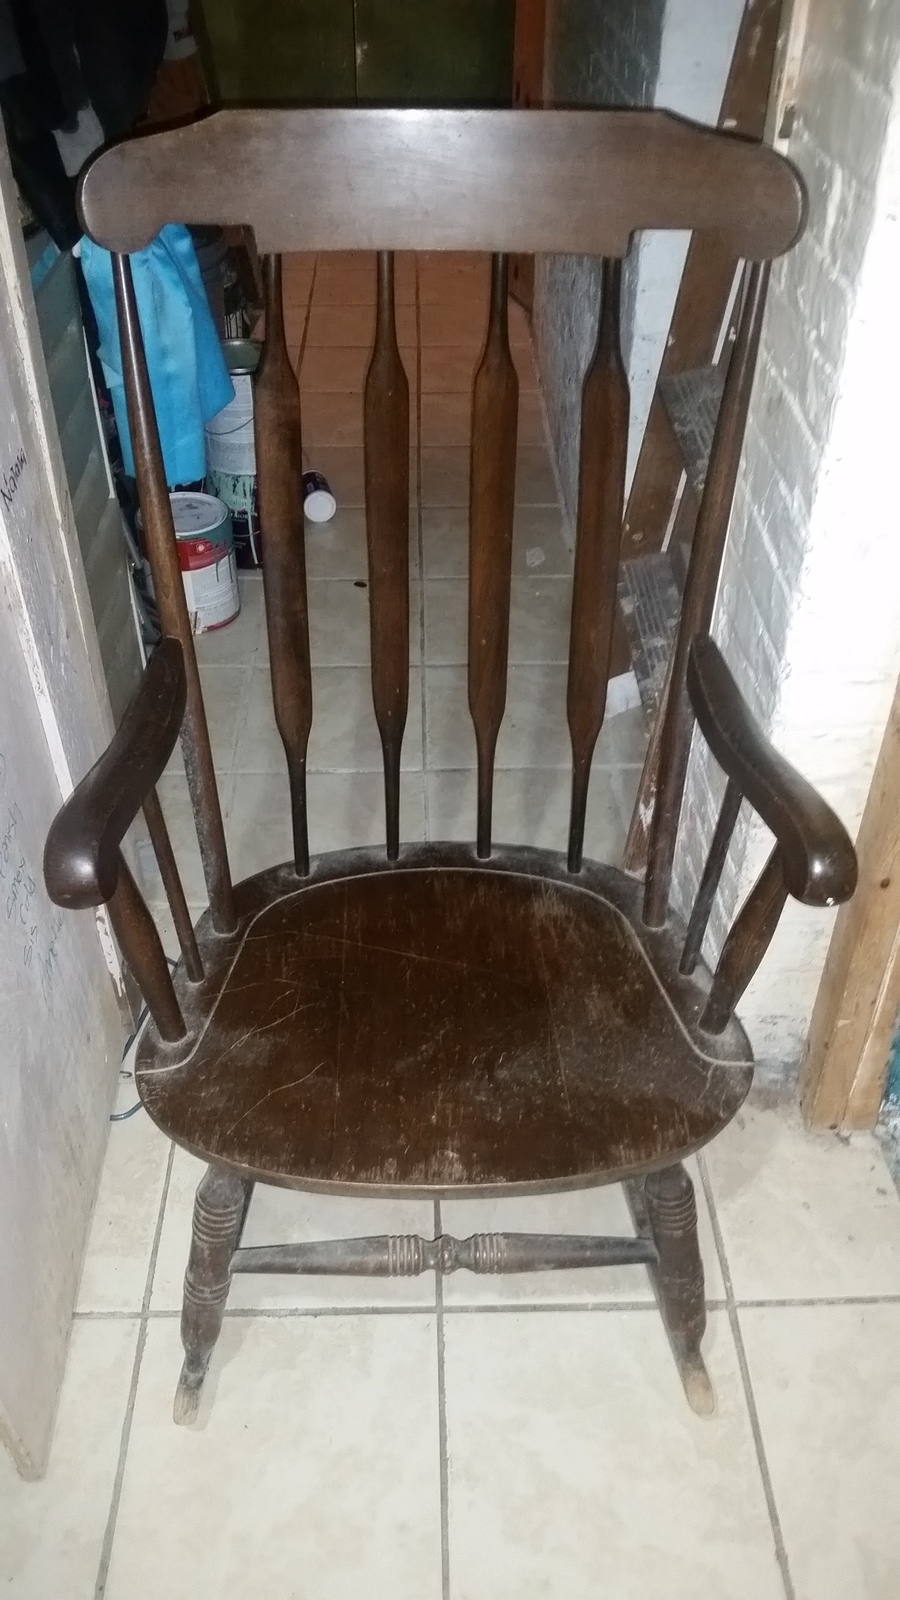 I Have A Rocking Chair Marked SK And The Numbers 307